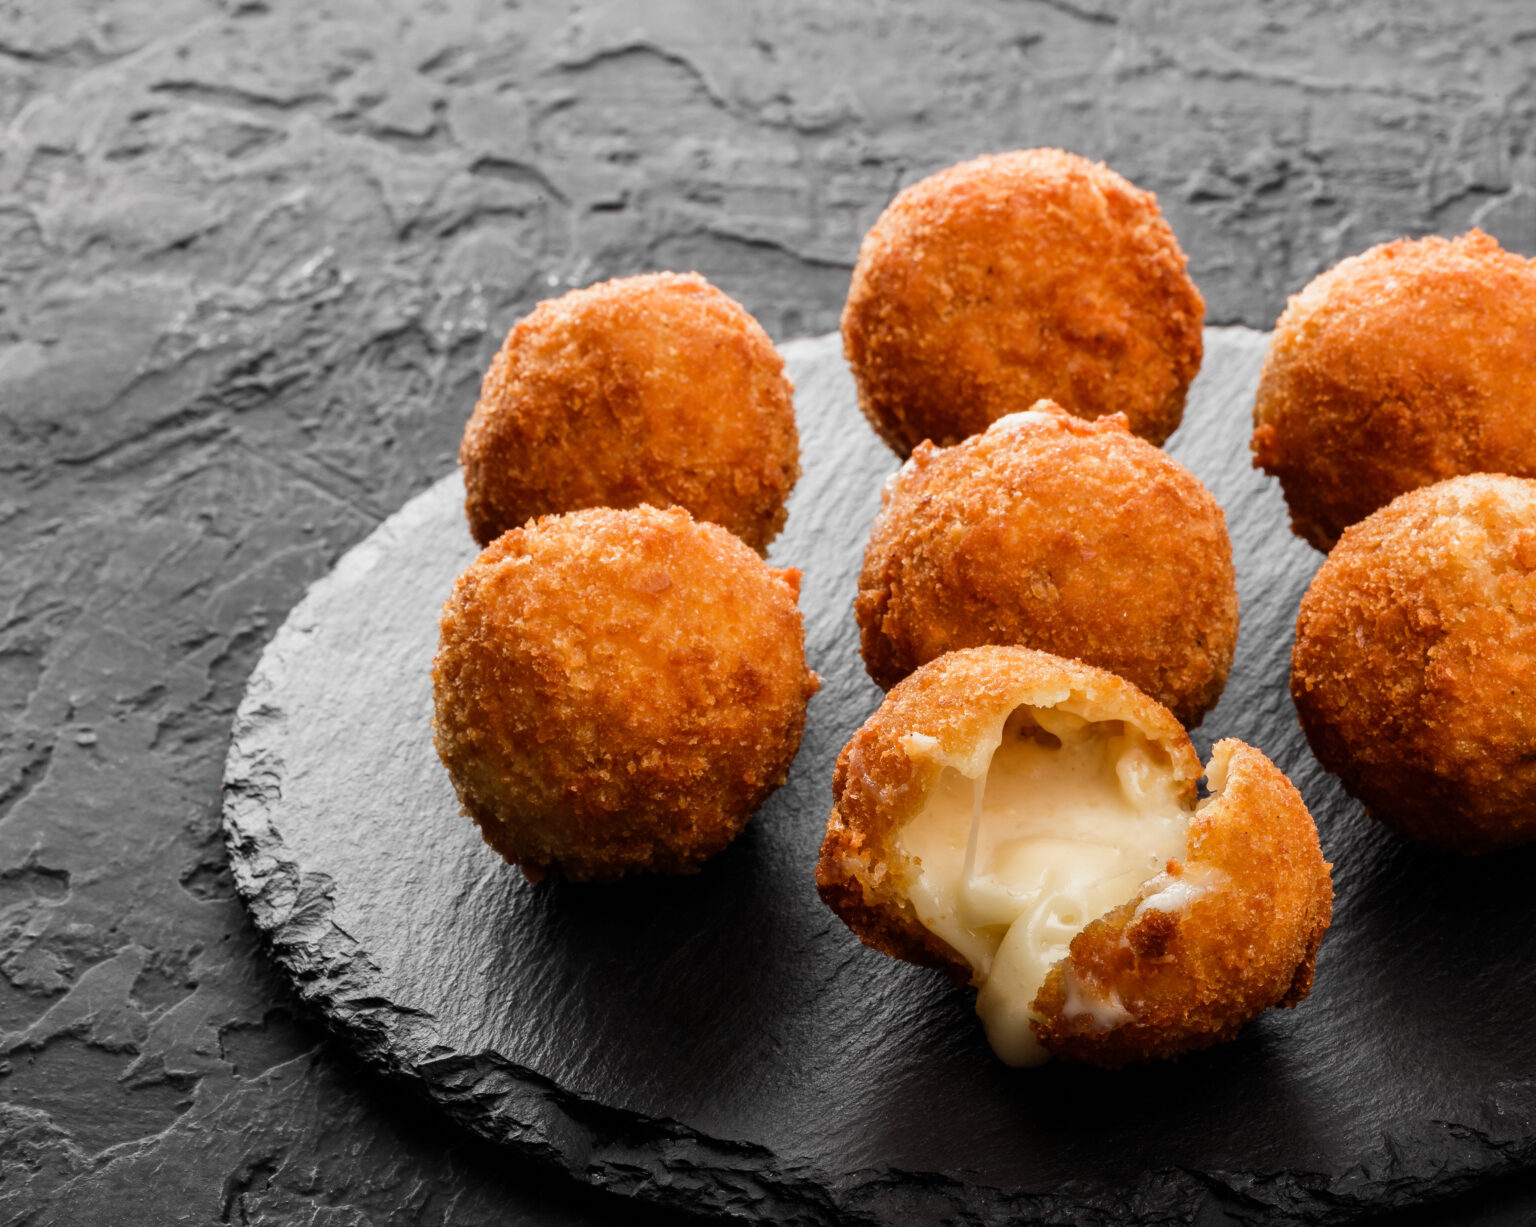 Fried potato cheese balls or croquettes with spices on black plate over dark stone background. Unhealthy food, top view.